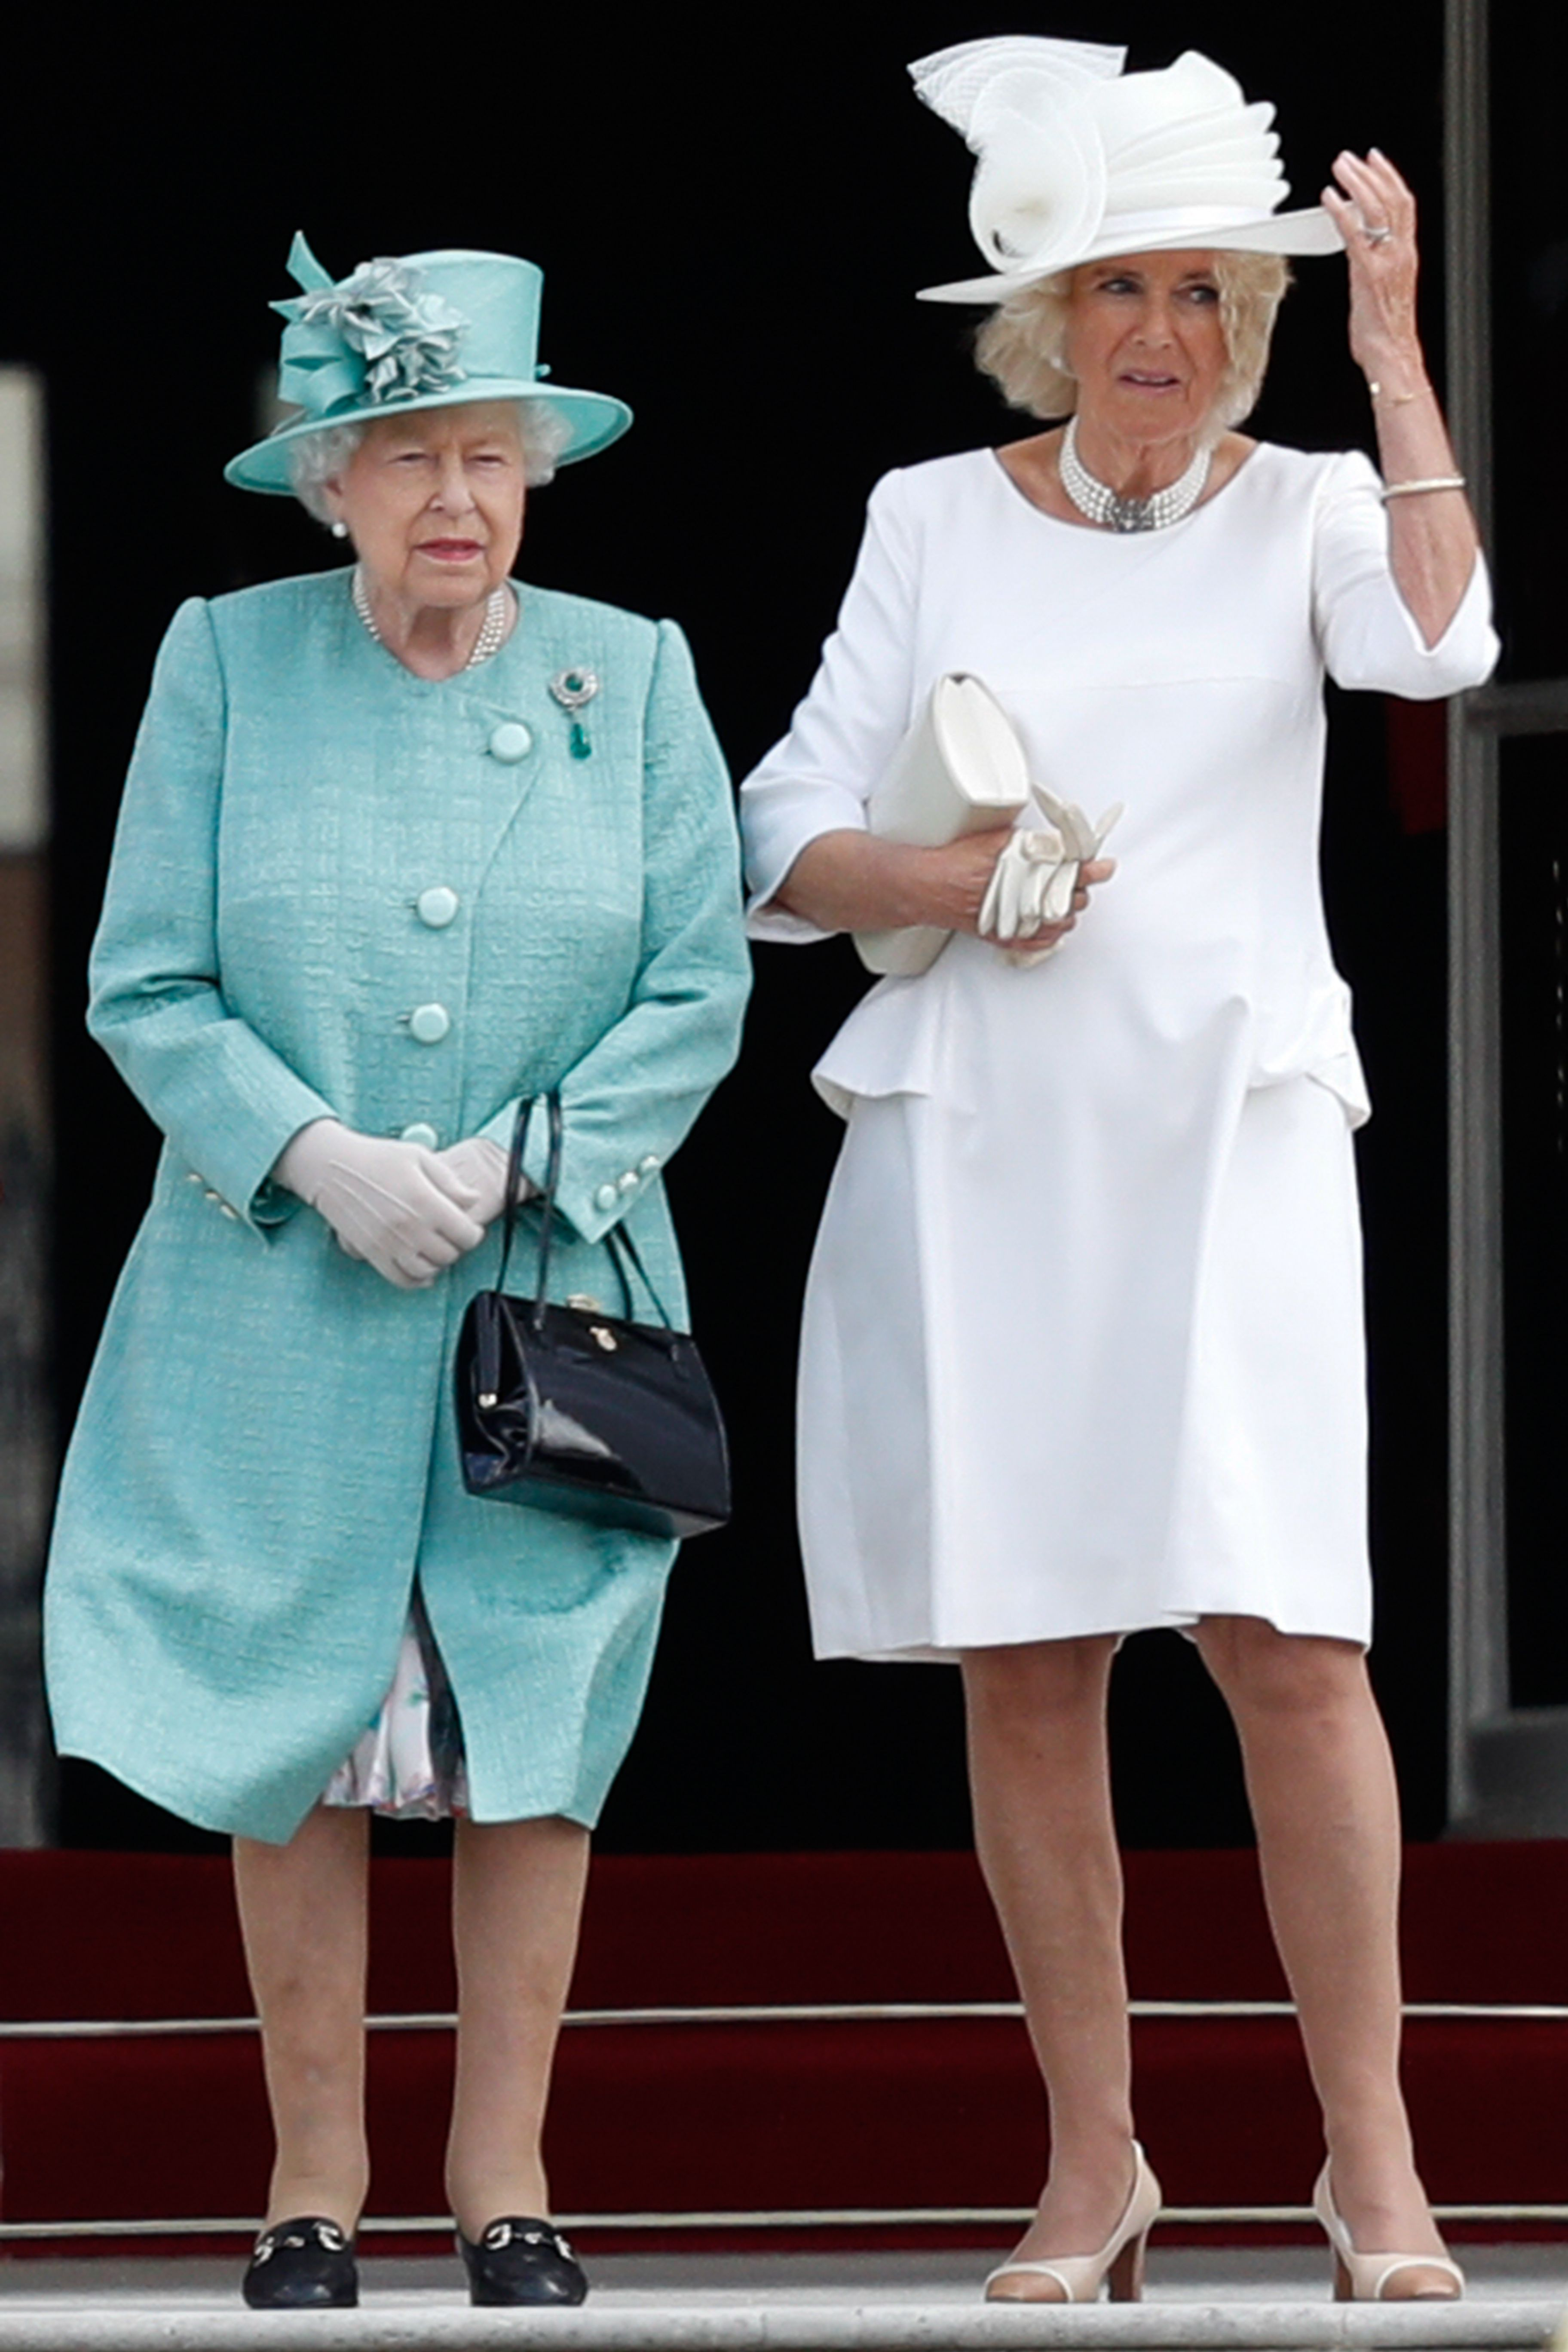 Britain's Queen Elizabeth II (L) stands with Britain's Camilla, Duchess of Cornwall (R) during a welcome ceremony at Buckingham Palace in central London on June 3, 2019, on the first day of the US president and First Lady's three-day State Visit to the UK. - Britain rolled out the red carpet for US President Donald Trump on June 3 as he arrived in Britain for a state visit already overshadowed by his outspoken remarks on Brexit. (Photo by Adrian DENNIS / POOL / AFP)        (Photo credit should read ADRIAN DENNIS/AFP/Getty Images)